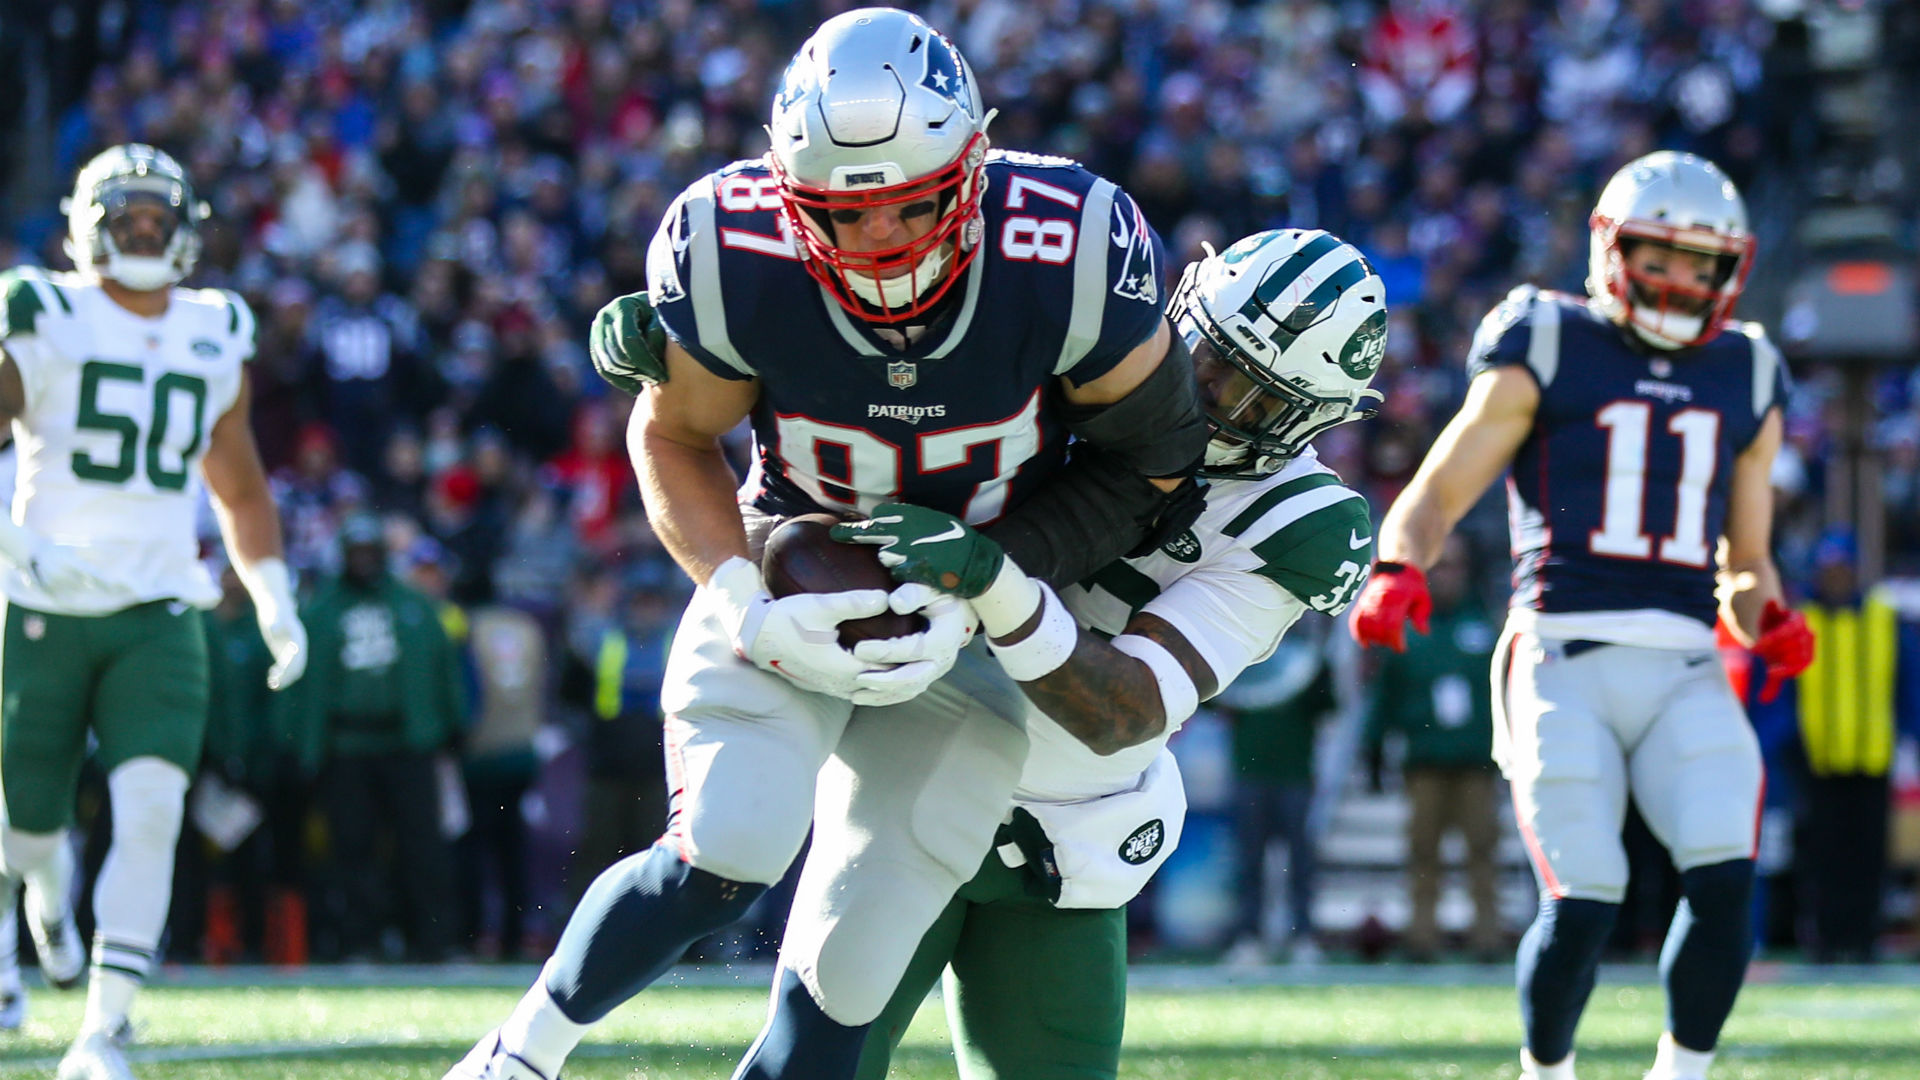 Rob Gronkowski said there were no excuses for the New England Patriots in the NFL playoffs.